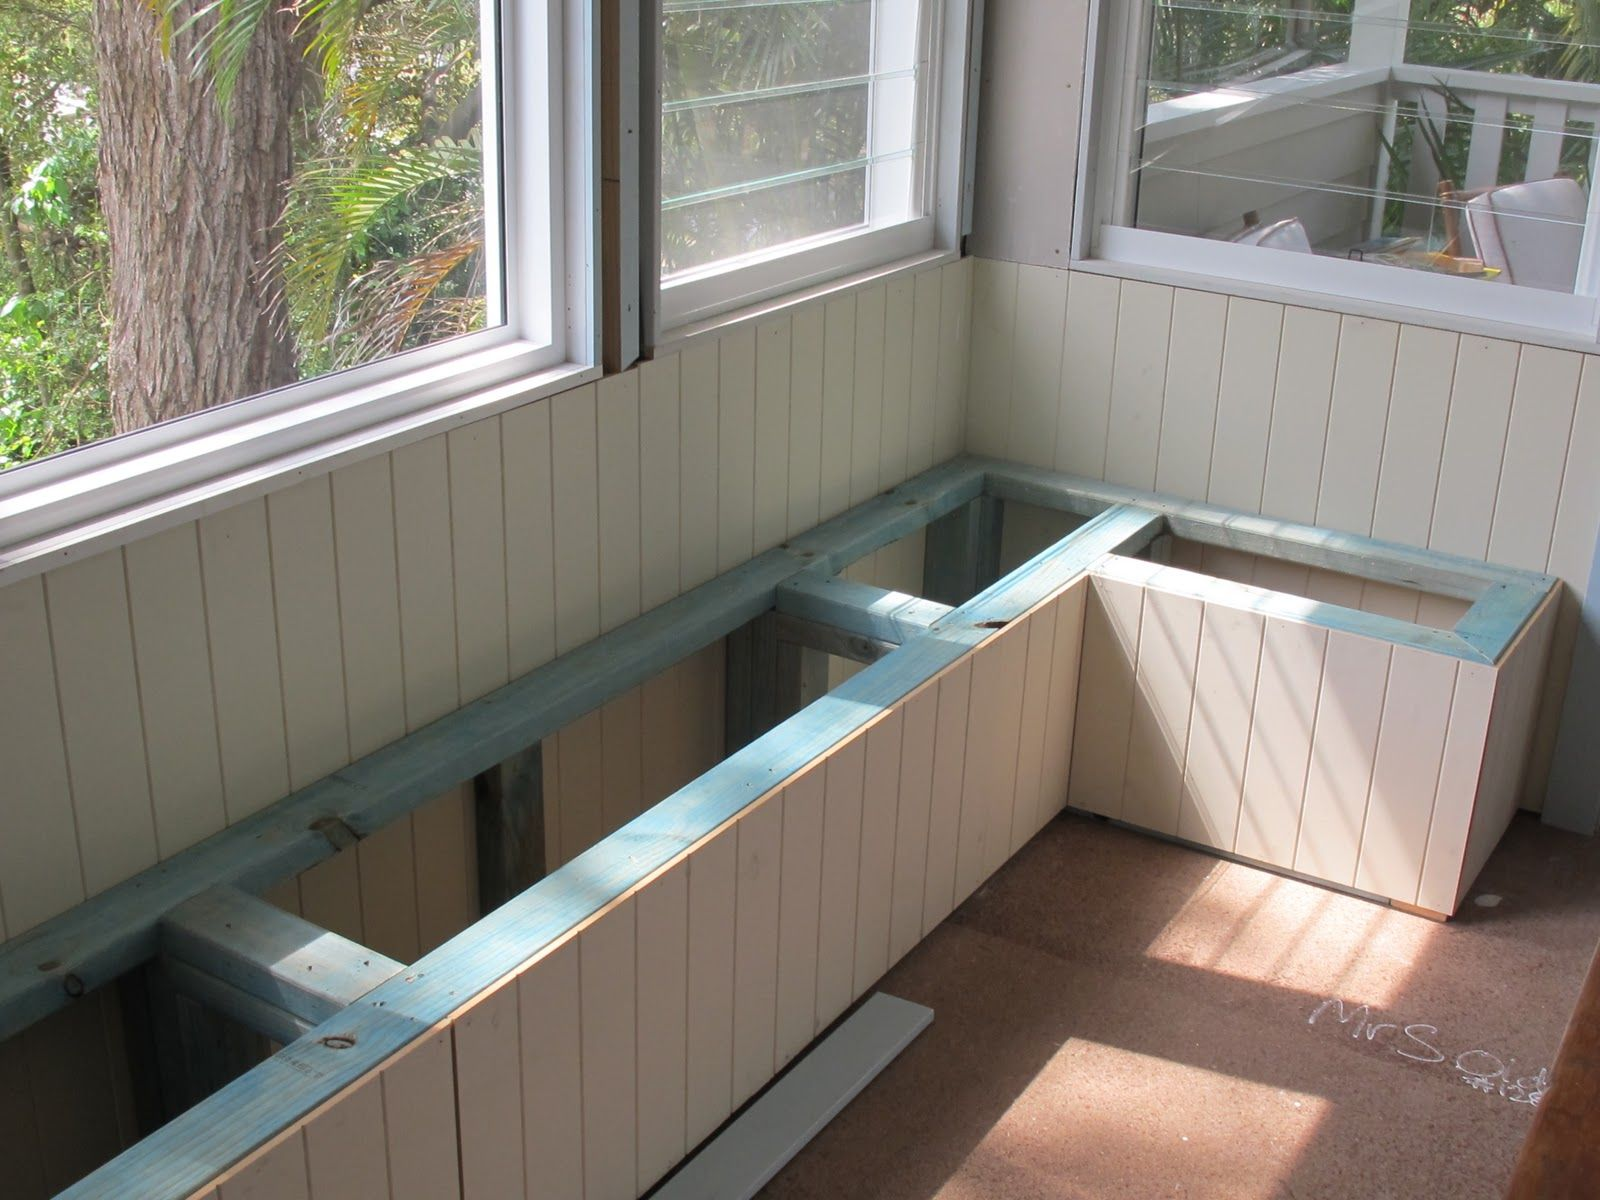 Diy Built In Bench Seating This Would So Help The Space In My Kitchen Dining Room Bench Seating Ikea Dining Room Living Room Bench